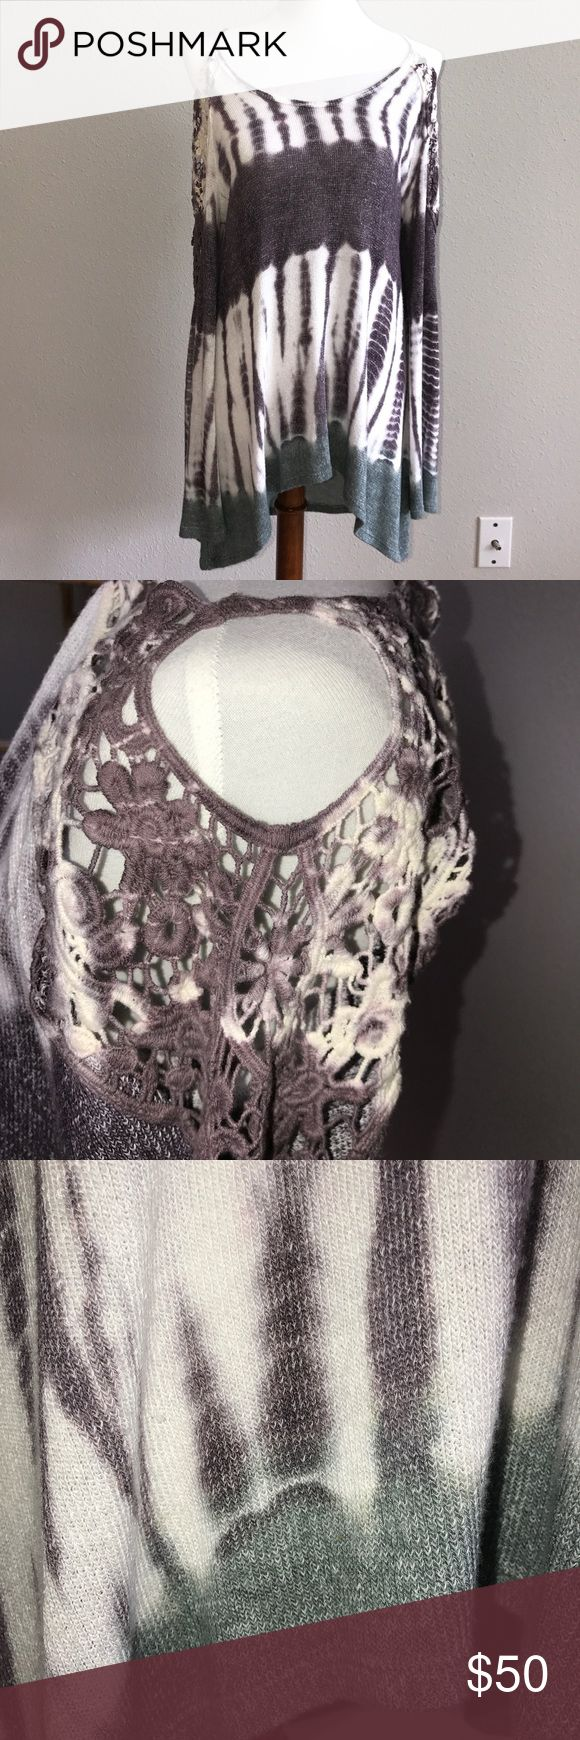 """Cold Shoulder Tie Dye Tunic Purple, Ivory & Green Poly/Rayon Blend. Knot Tunic with Embroidery on shoulder and arm. Three quarter sleeve. Measures 21"""" Armpit to Armpit, 31"""" from back of Neckline to back Hem, 24"""" from base of Neckline to front hem. Fits generously. Brand is T ⭐️ Party. Size large. Made in the 🇺🇸. T Party Fashion Tops Tunics"""